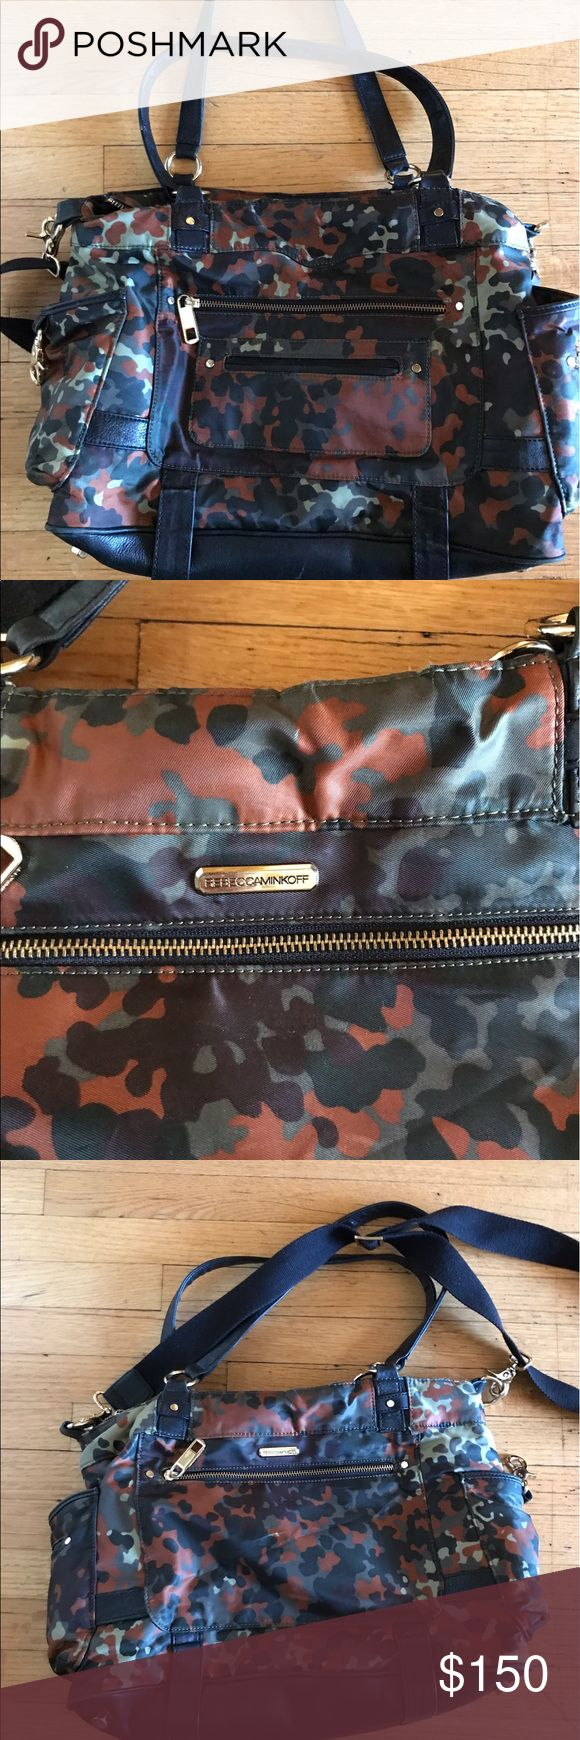 Rebecca Minkoff diaper bag Leather bottom and in great condition! Rebecca Minkoff Bags Baby Bags